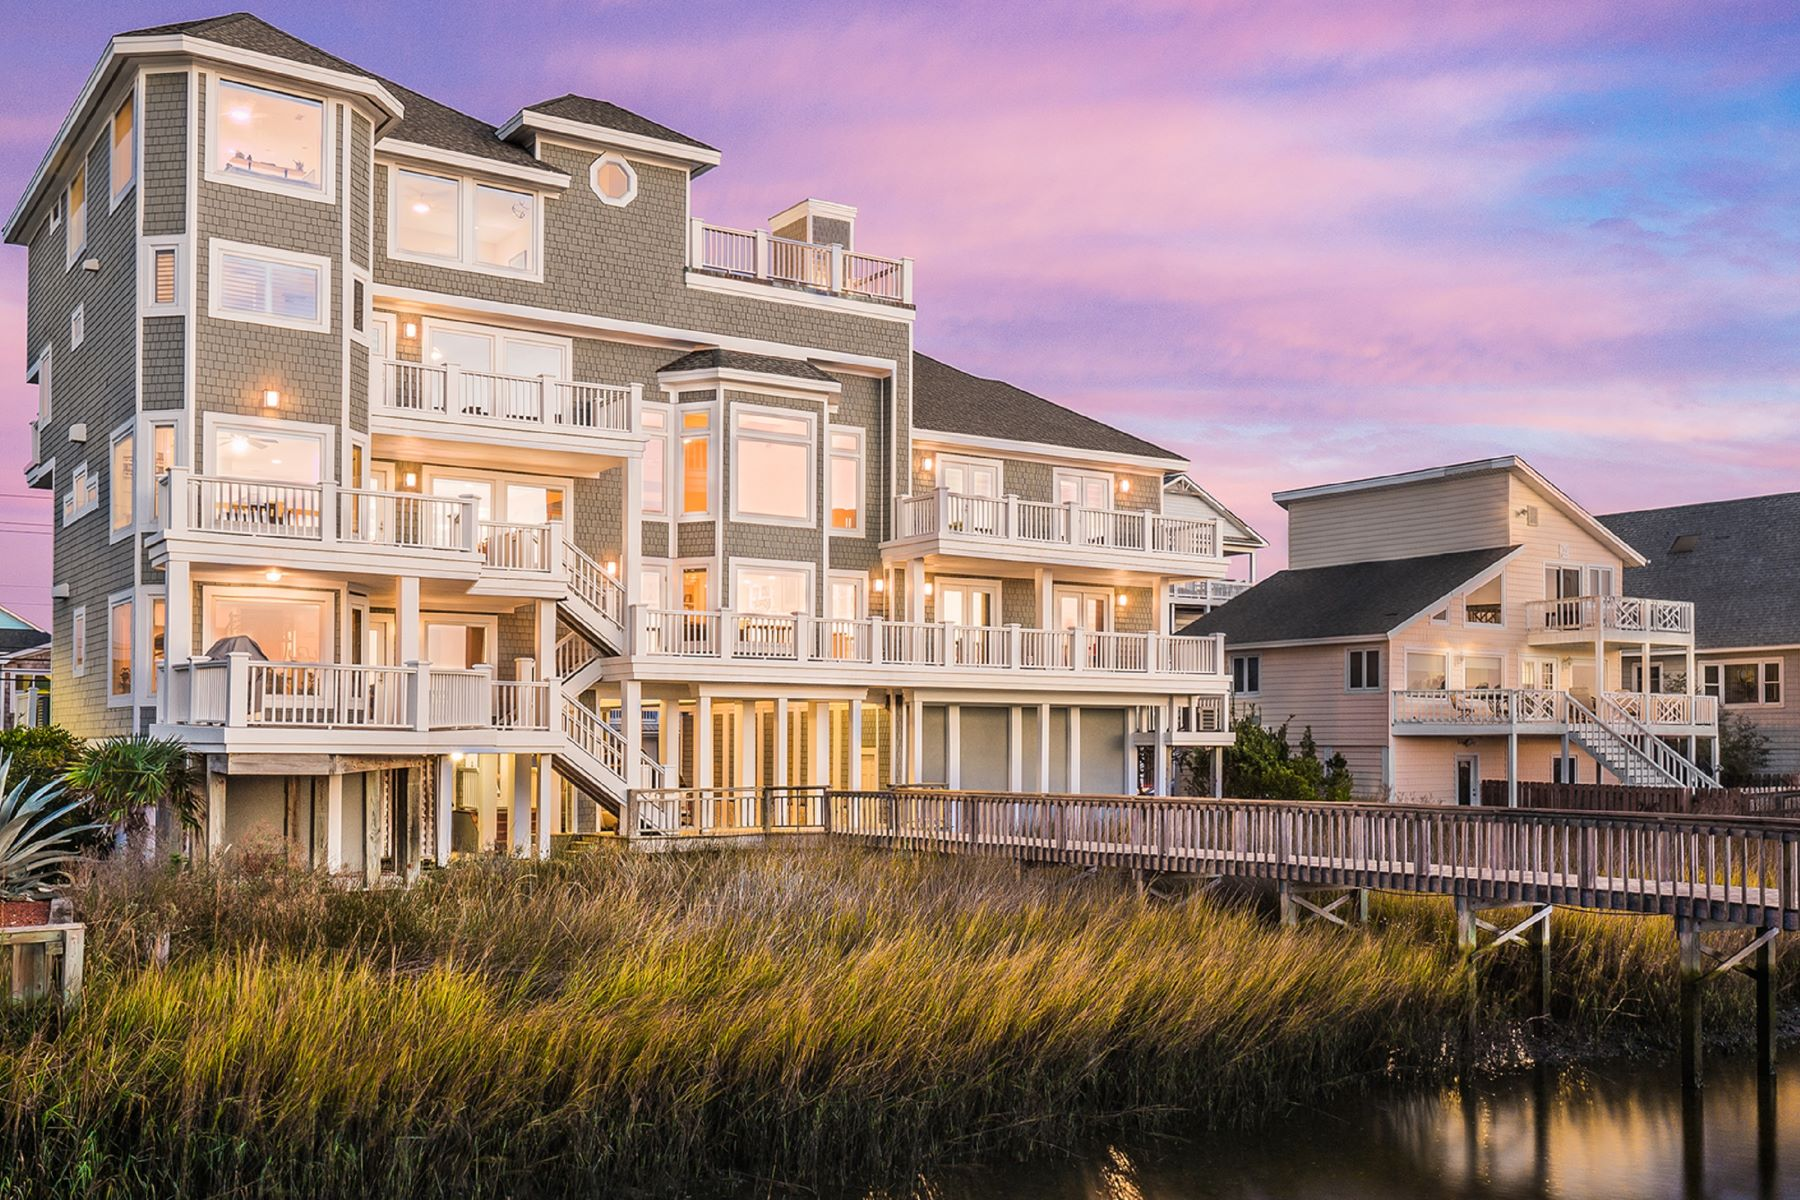 Single Family Homes for Active at Breathtaking Soundfront Property in Carolina Beach 1107 Canal Drive Carolina Beach, North Carolina 28428 United States